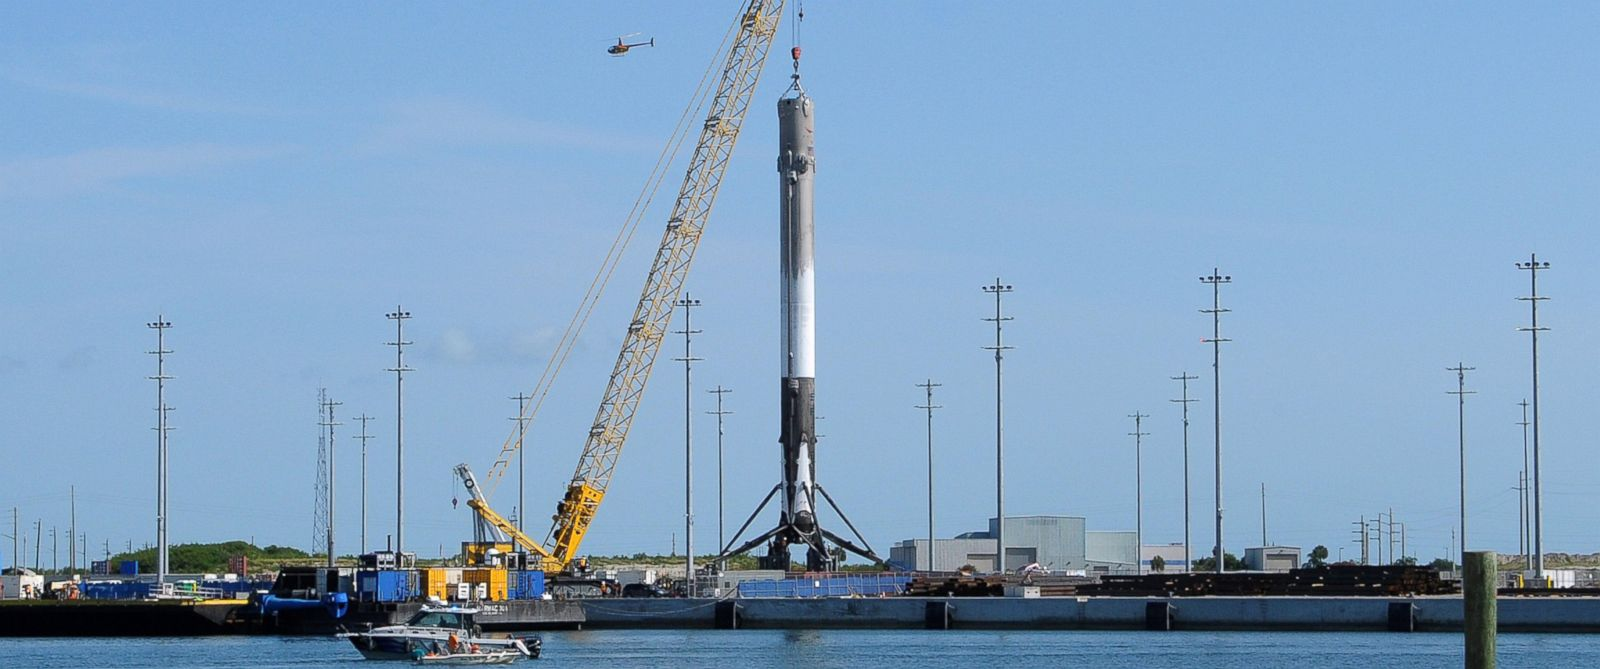 SpaceX Ready for Another Rocket Launch, Landing at Sea ...